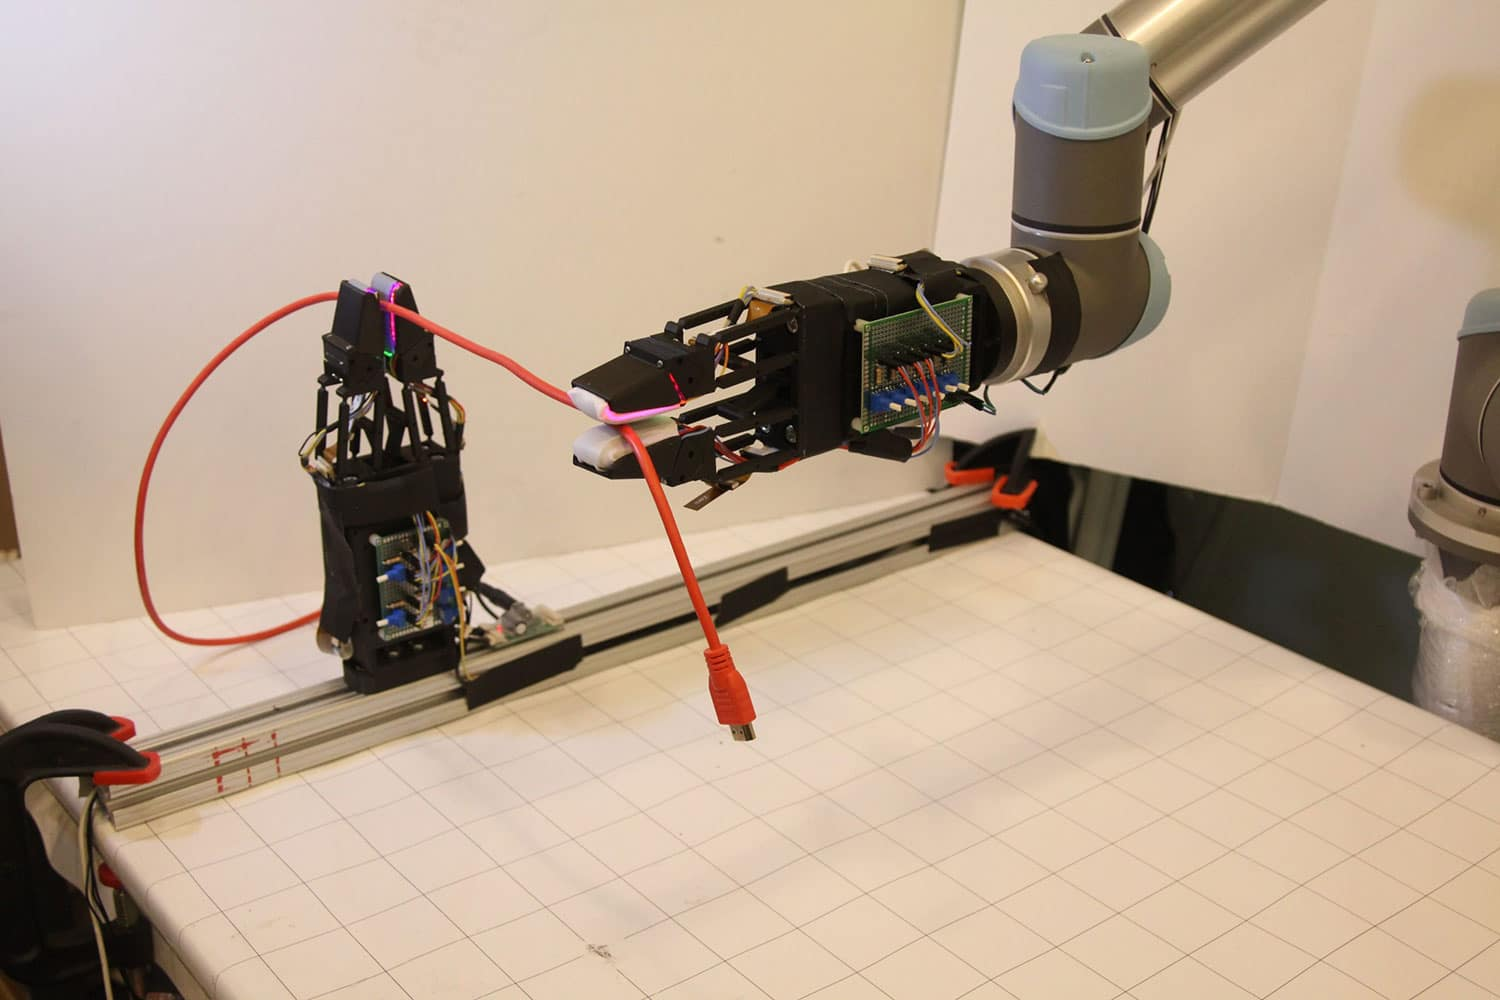 Robots learn to handle thin cables with unprecedented dexterity